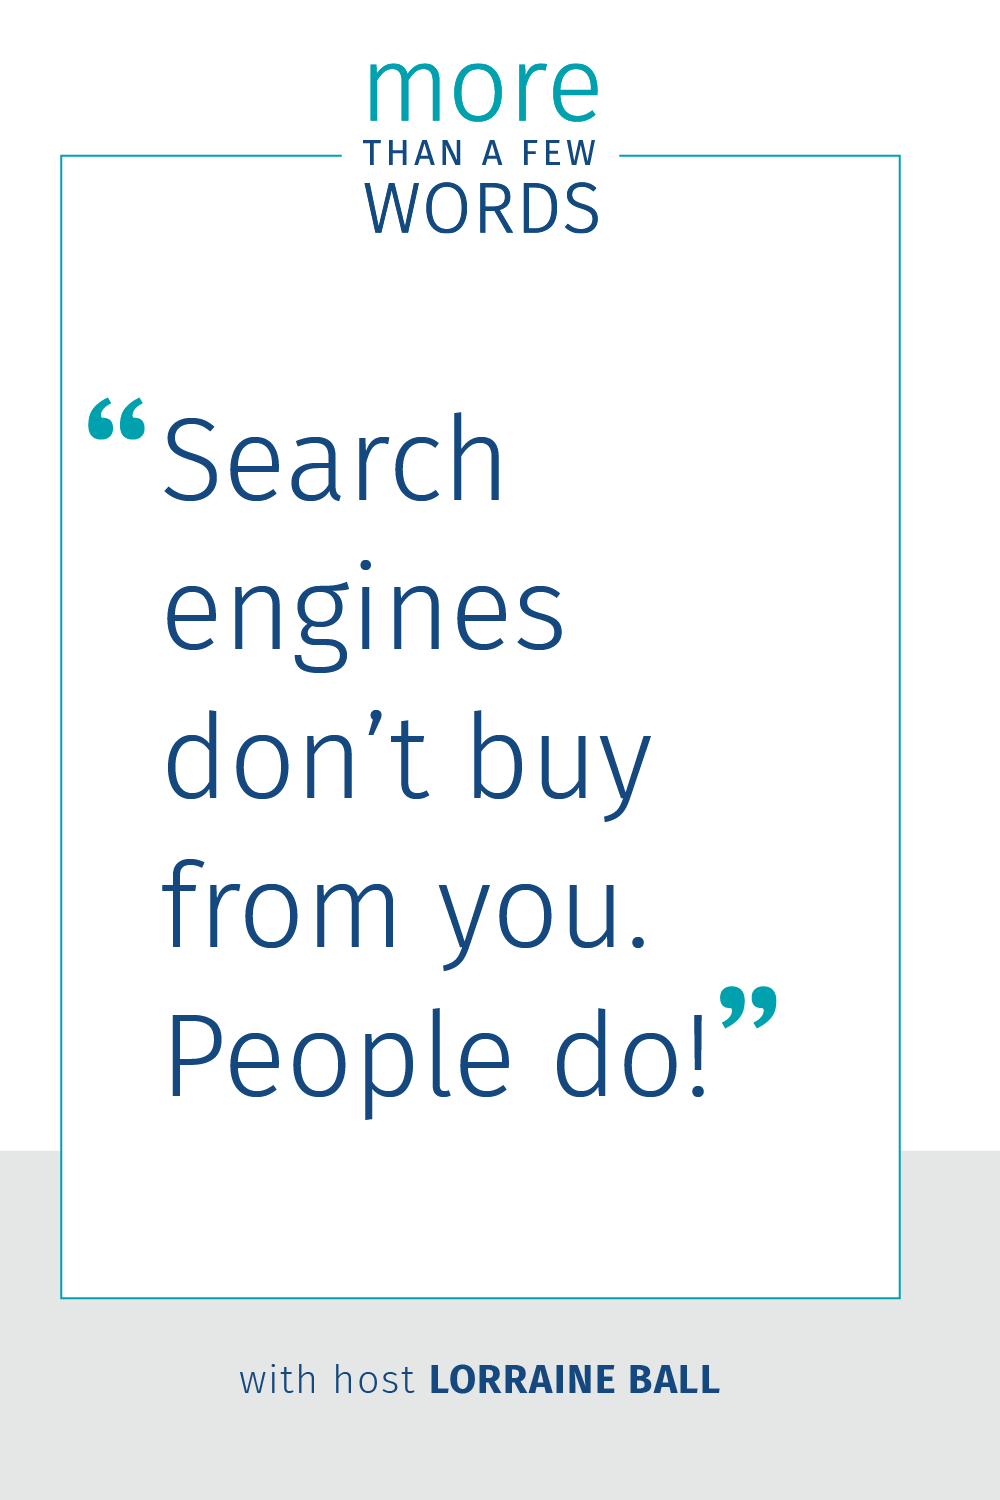 Content based seo  Search engines don't buy from you, people do